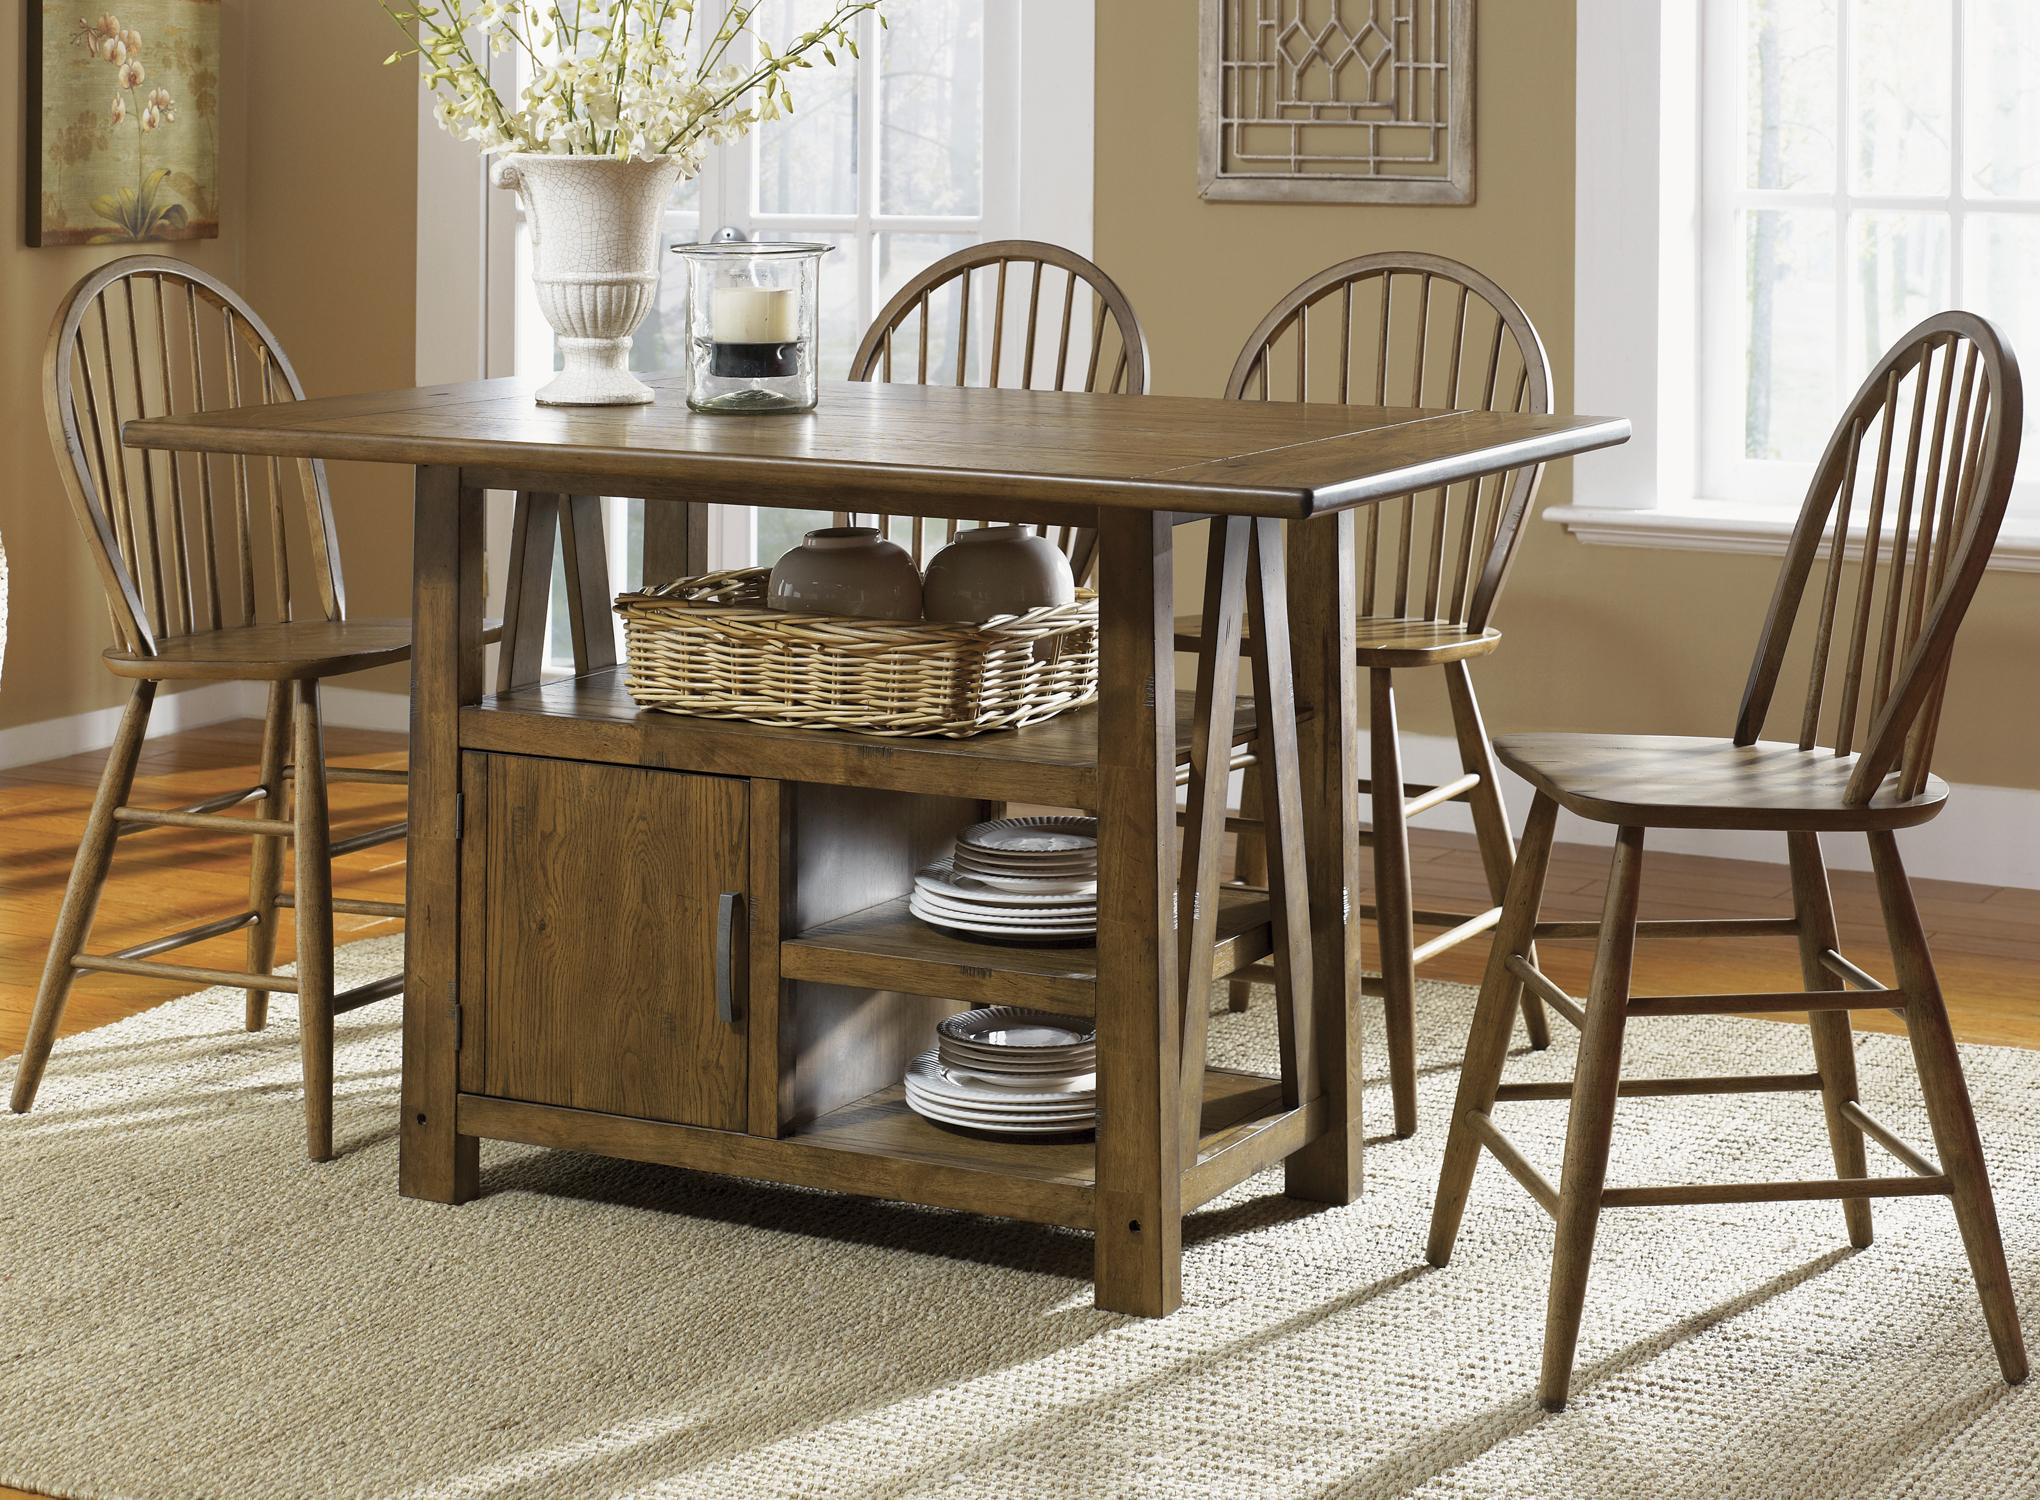 farmhouse tables and chairs forest dental chair 5 piece island pub table windsor back